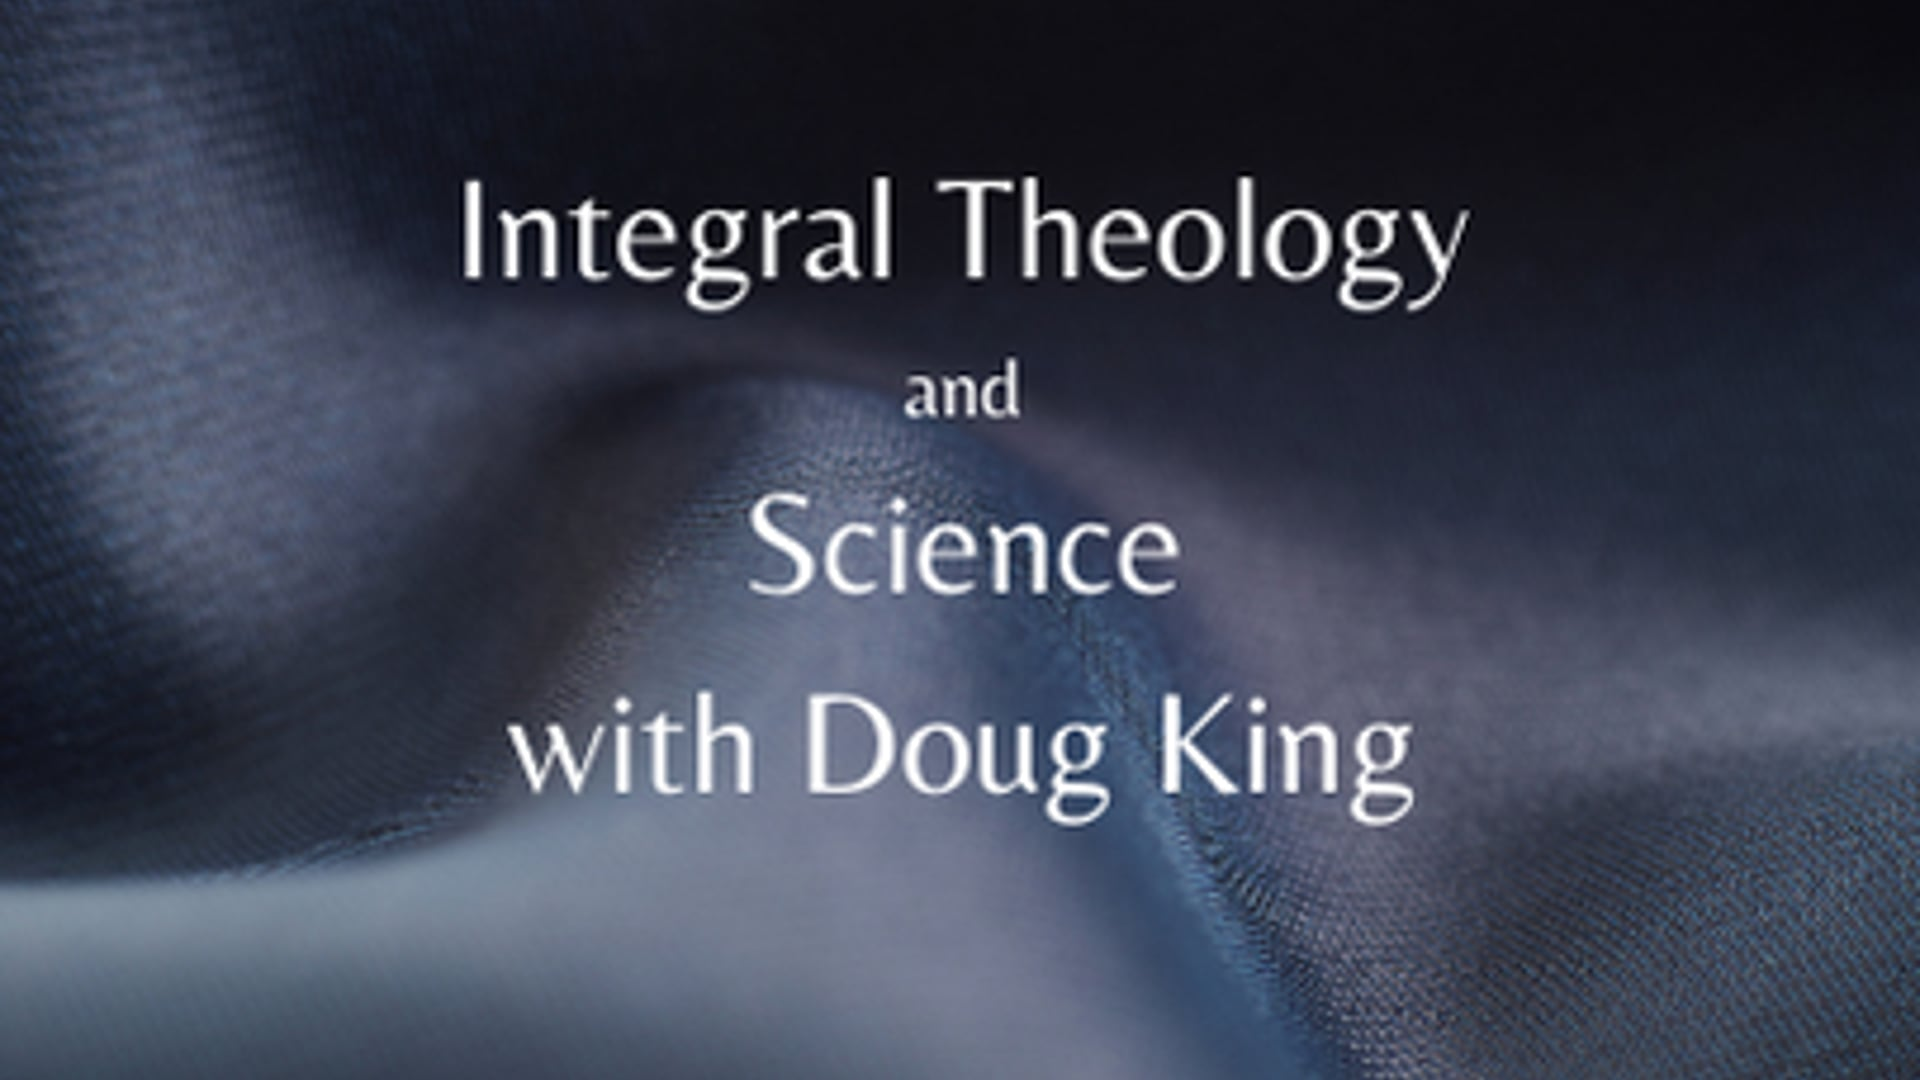 Integral Theology and Science